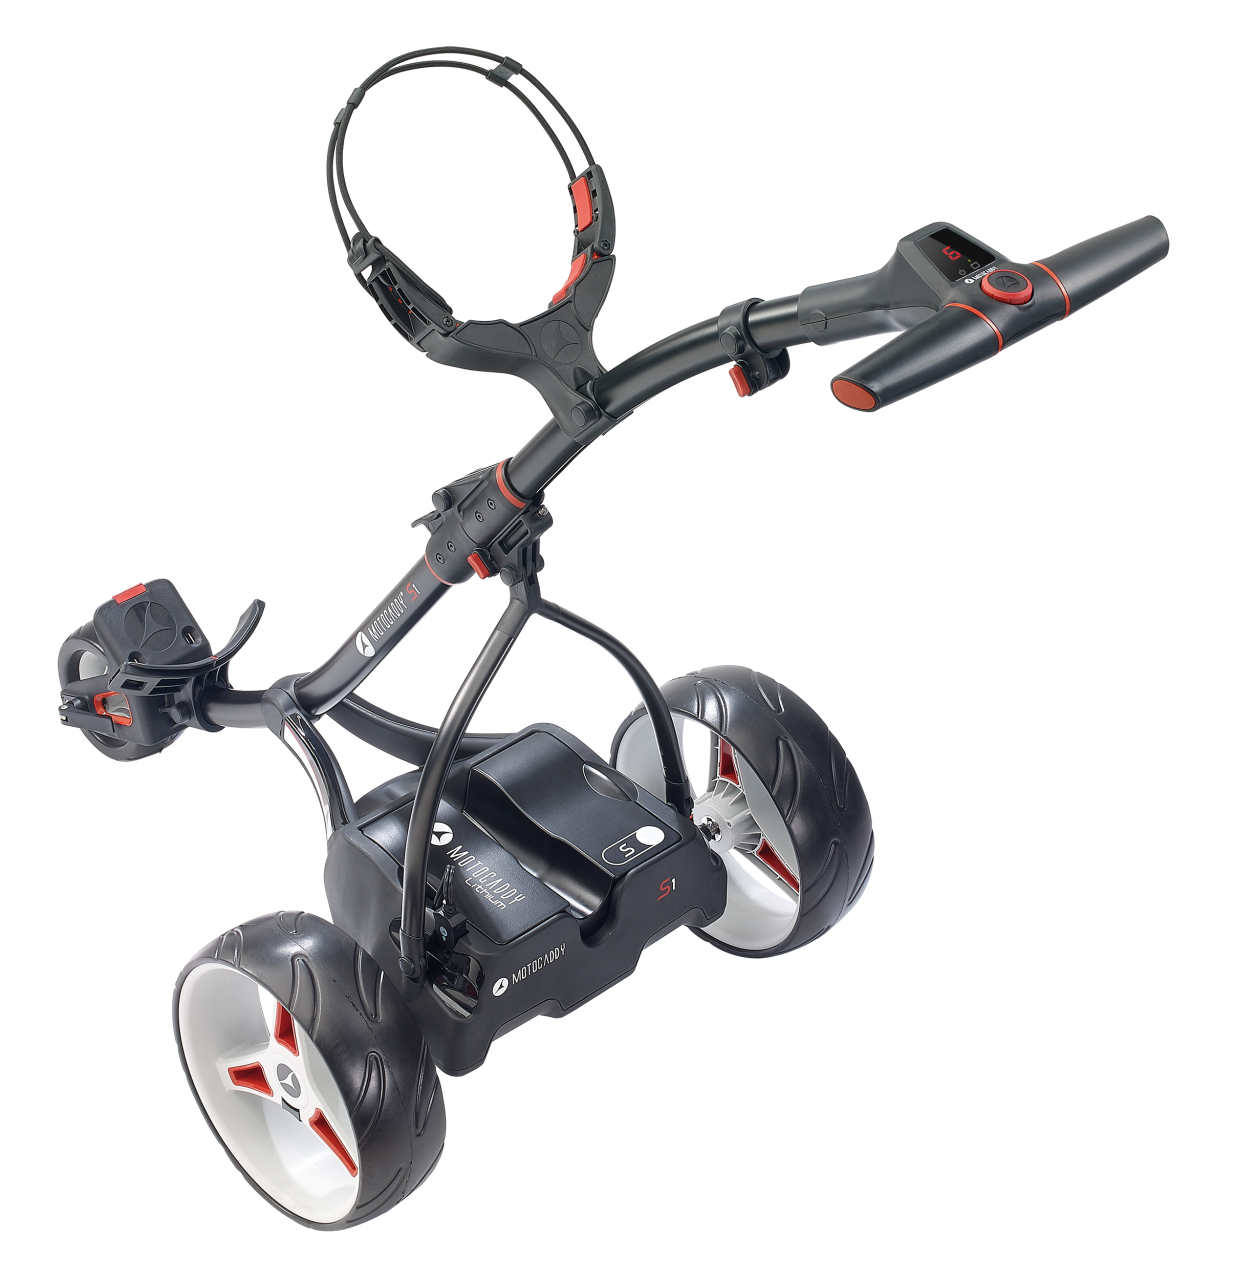 Motocaddy S1 Digital Lithium Electric Golf Trolley